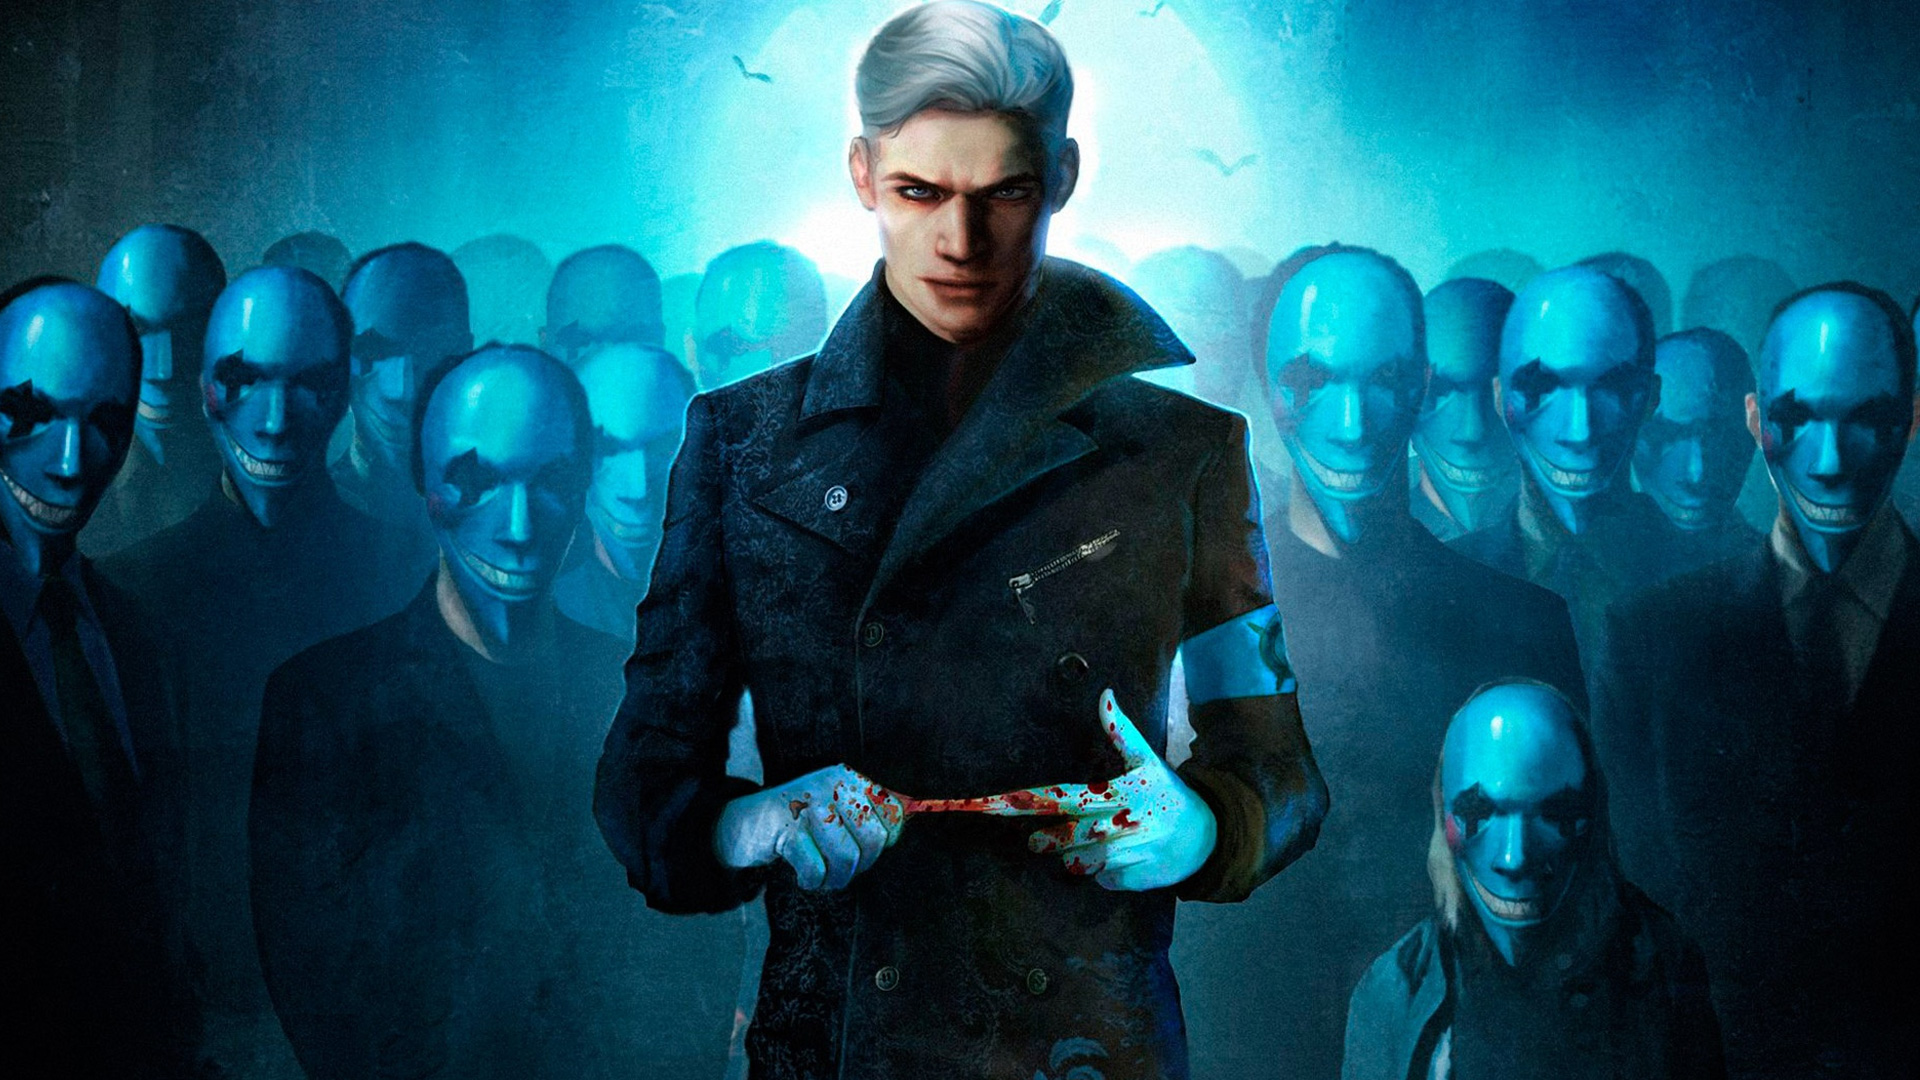 Wallpaper Dmc Devil May Cry Vergil Wallpaper Hd 381812 Hd